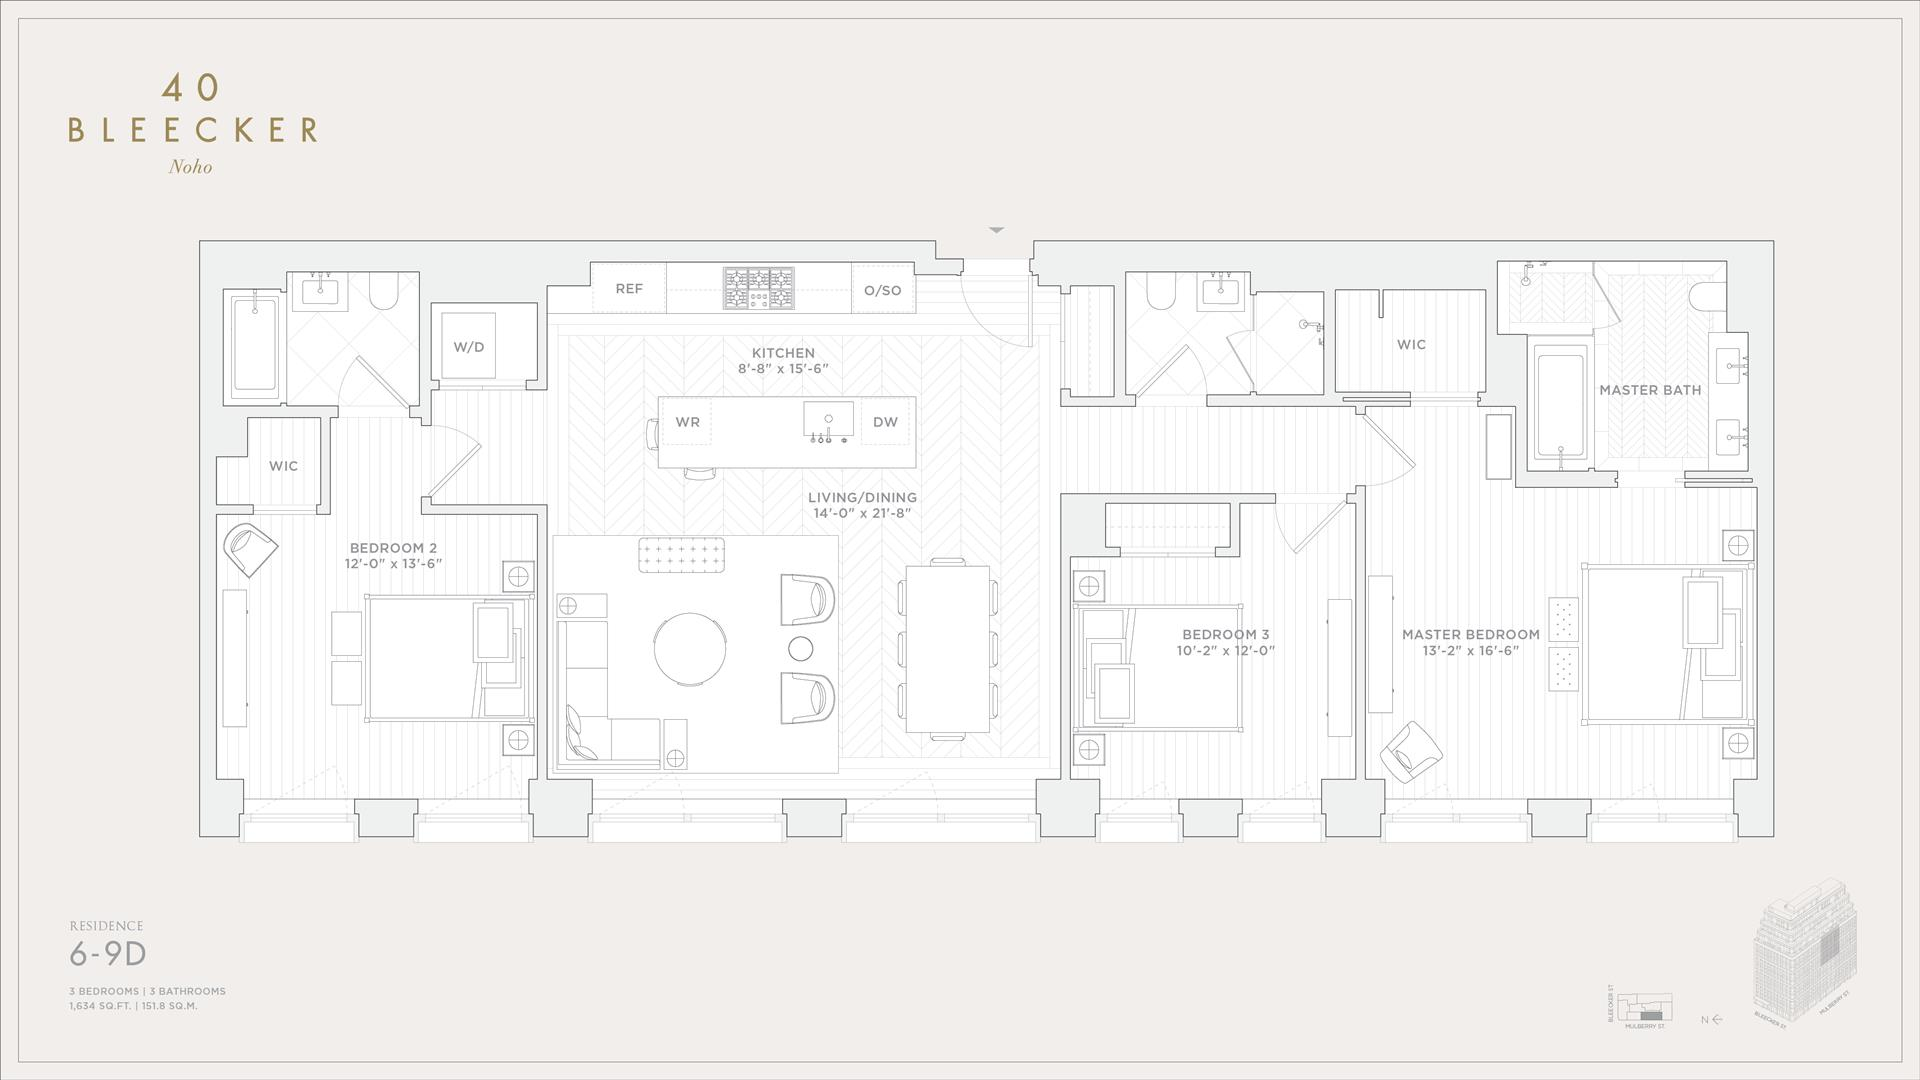 Floor plan of 40 Bleecker Street, 9D - NoHo, New York